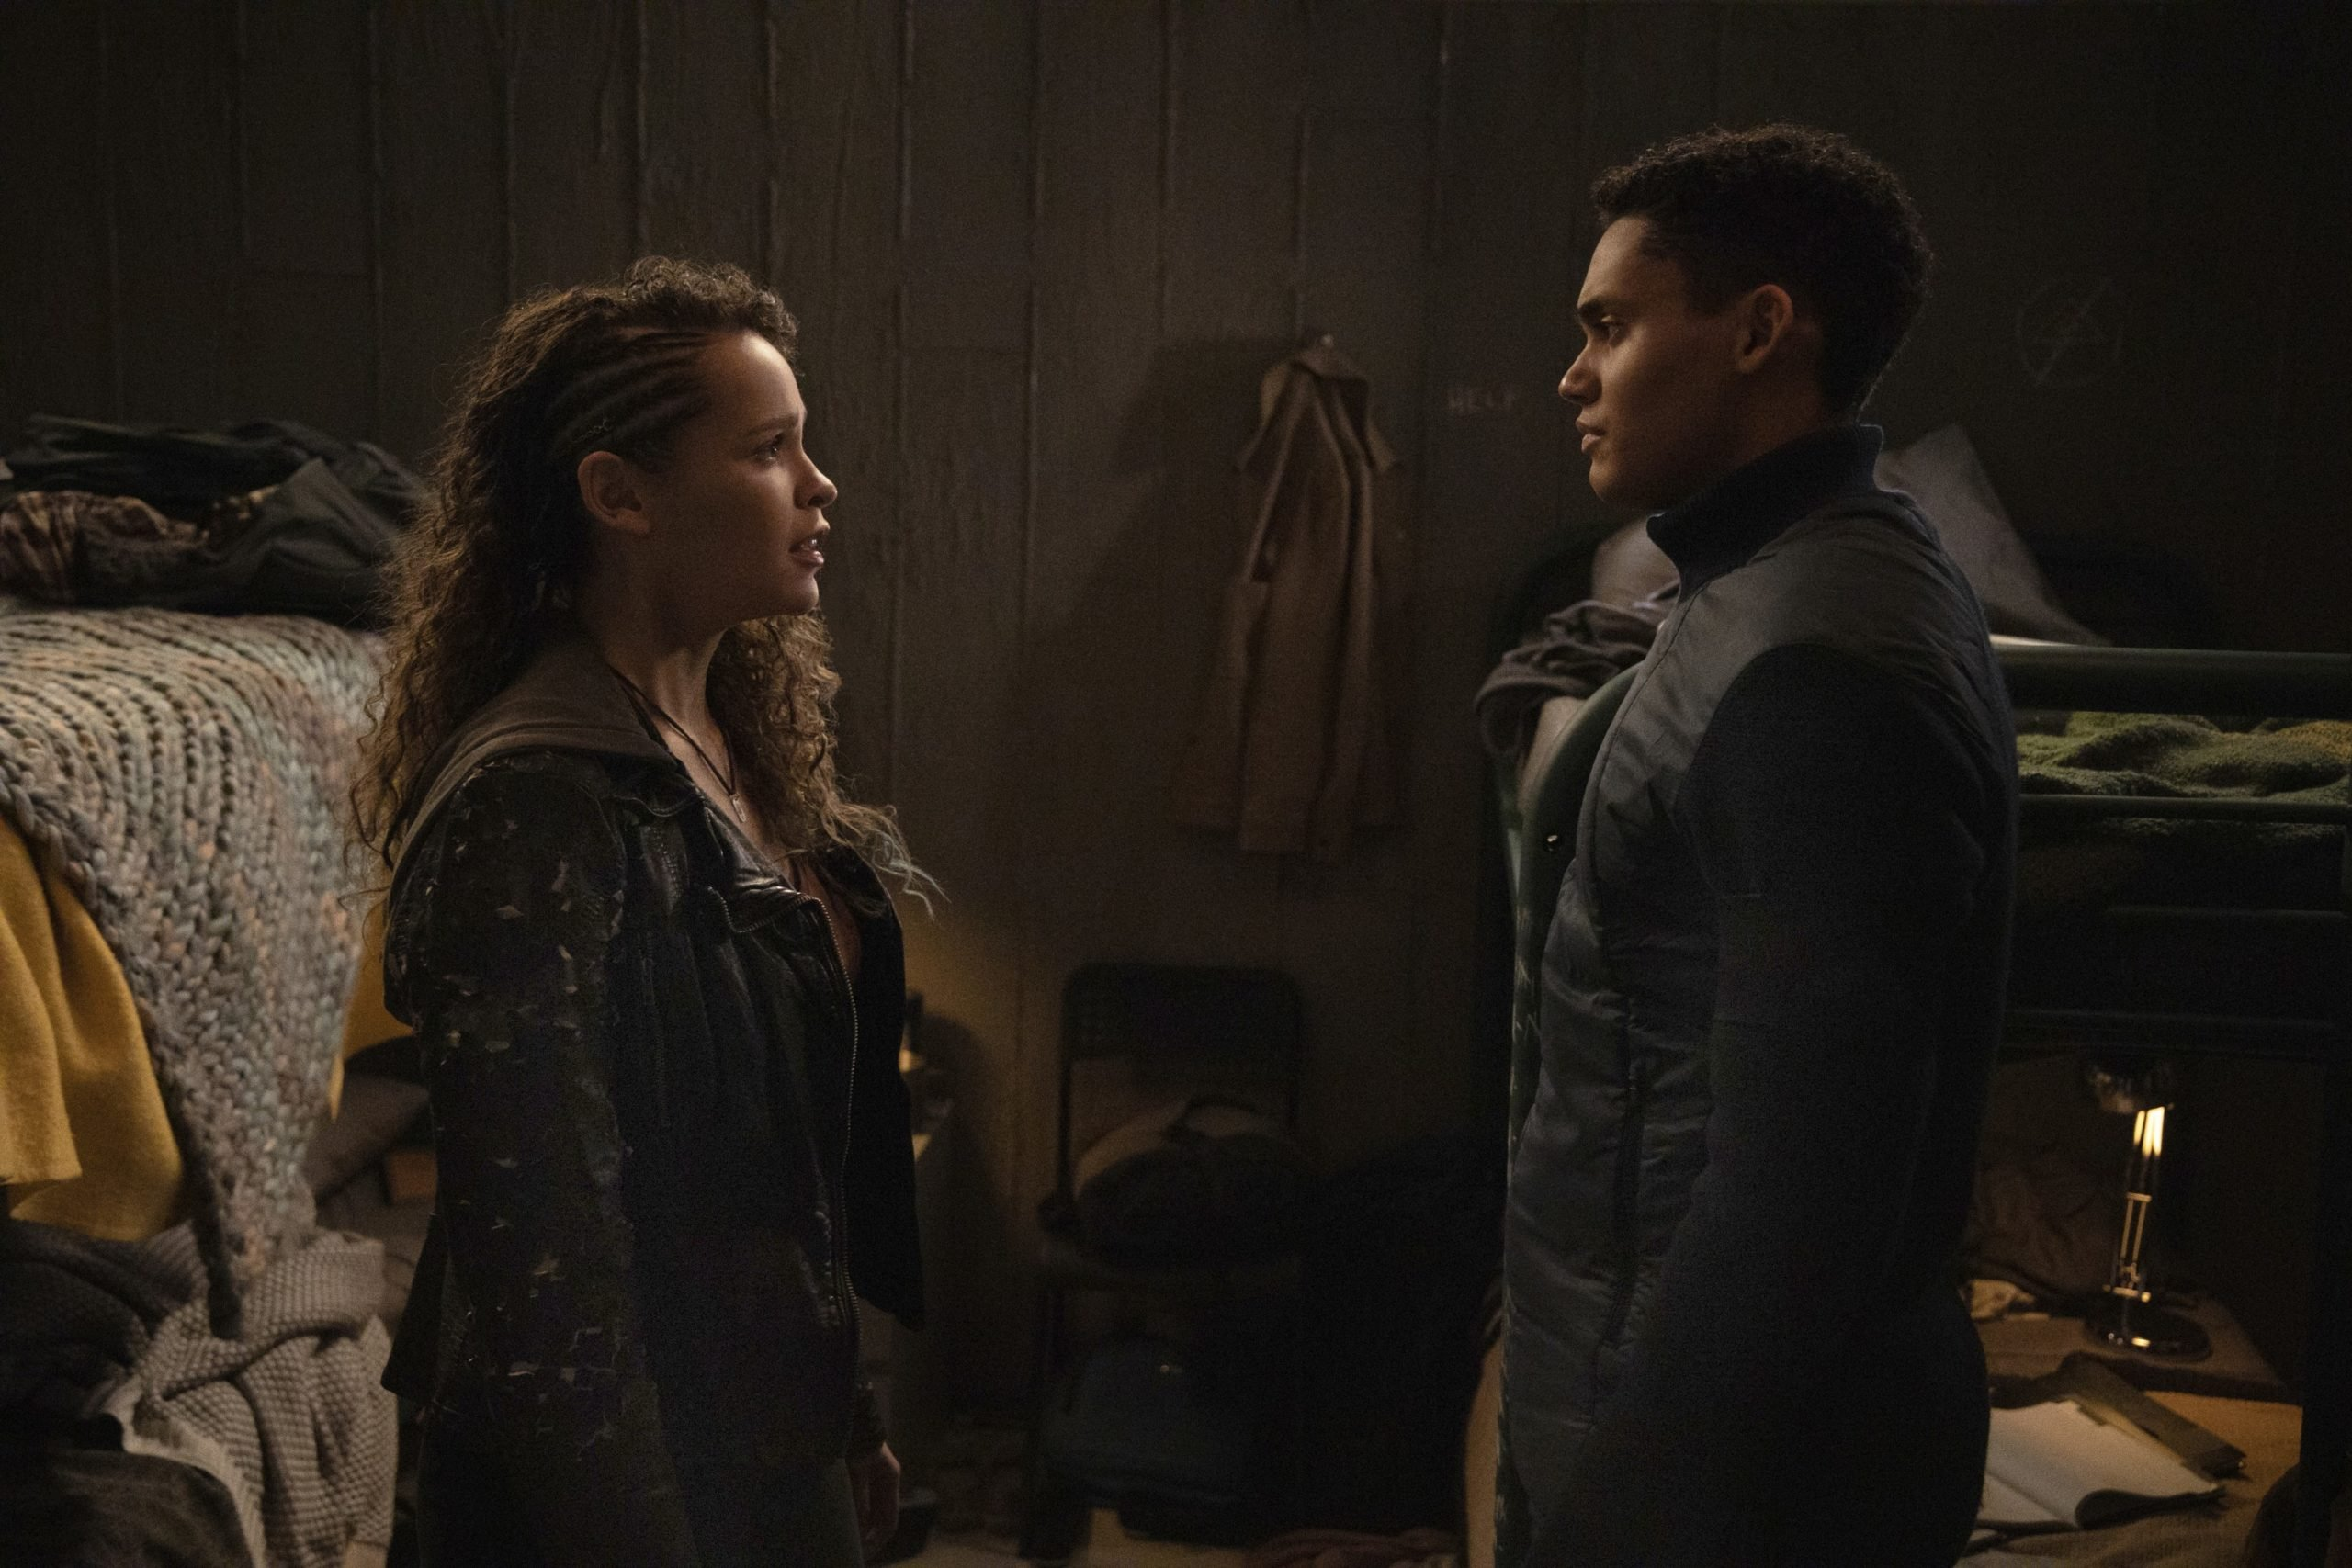 Lola Evans as Callie and Adain Bradley as and Reese in the backdoor pilot for The 100 prequel